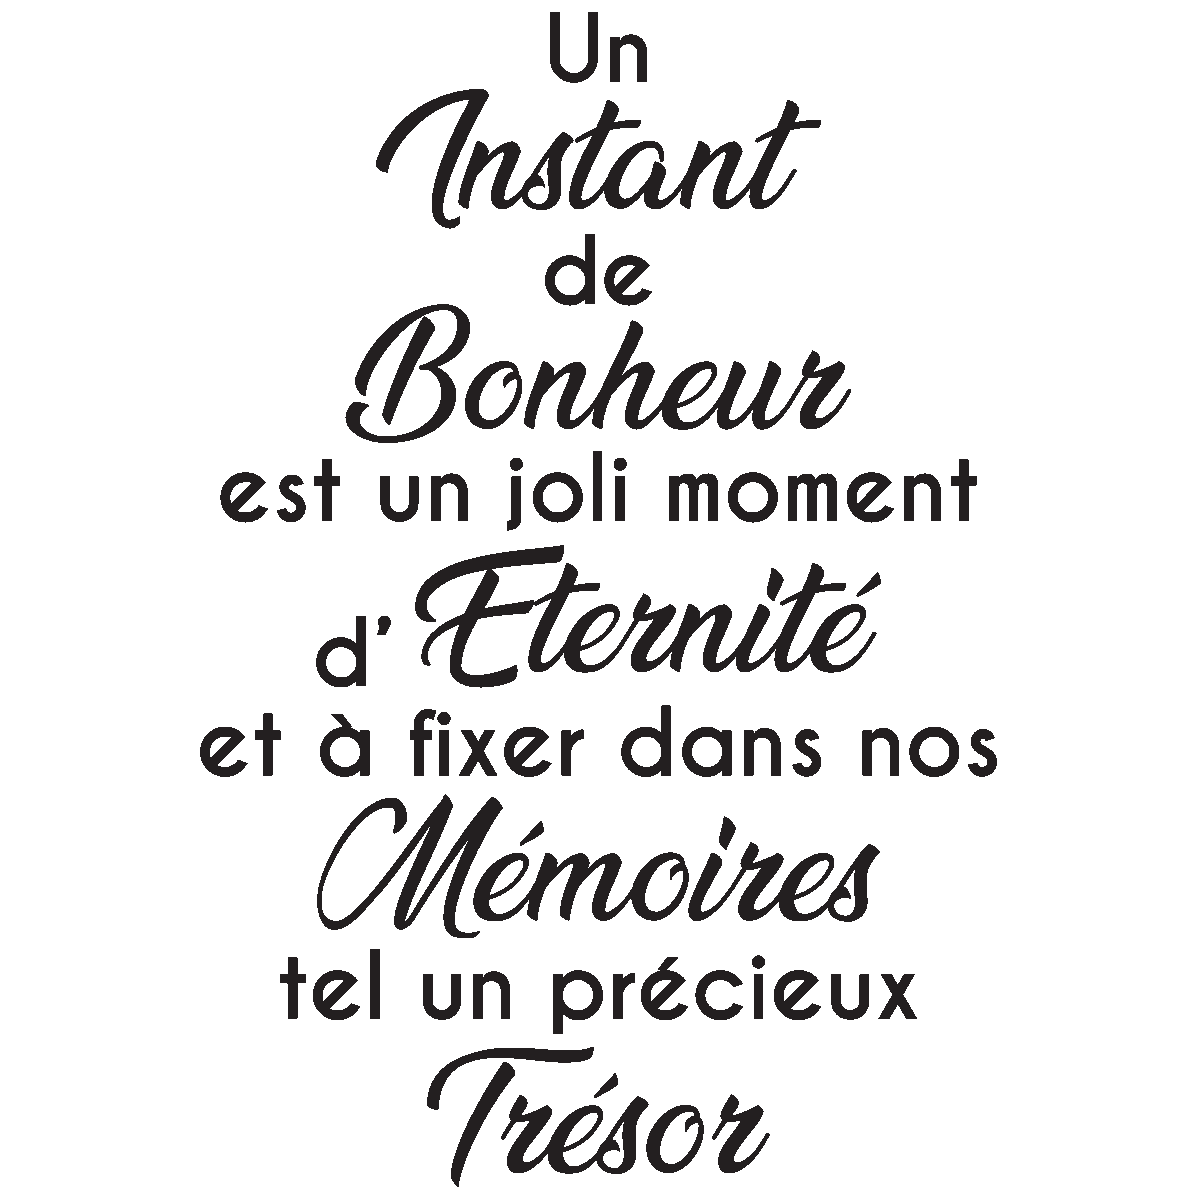 sticker citation un instant de bonheur stickers citations fran ais ambiance sticker. Black Bedroom Furniture Sets. Home Design Ideas